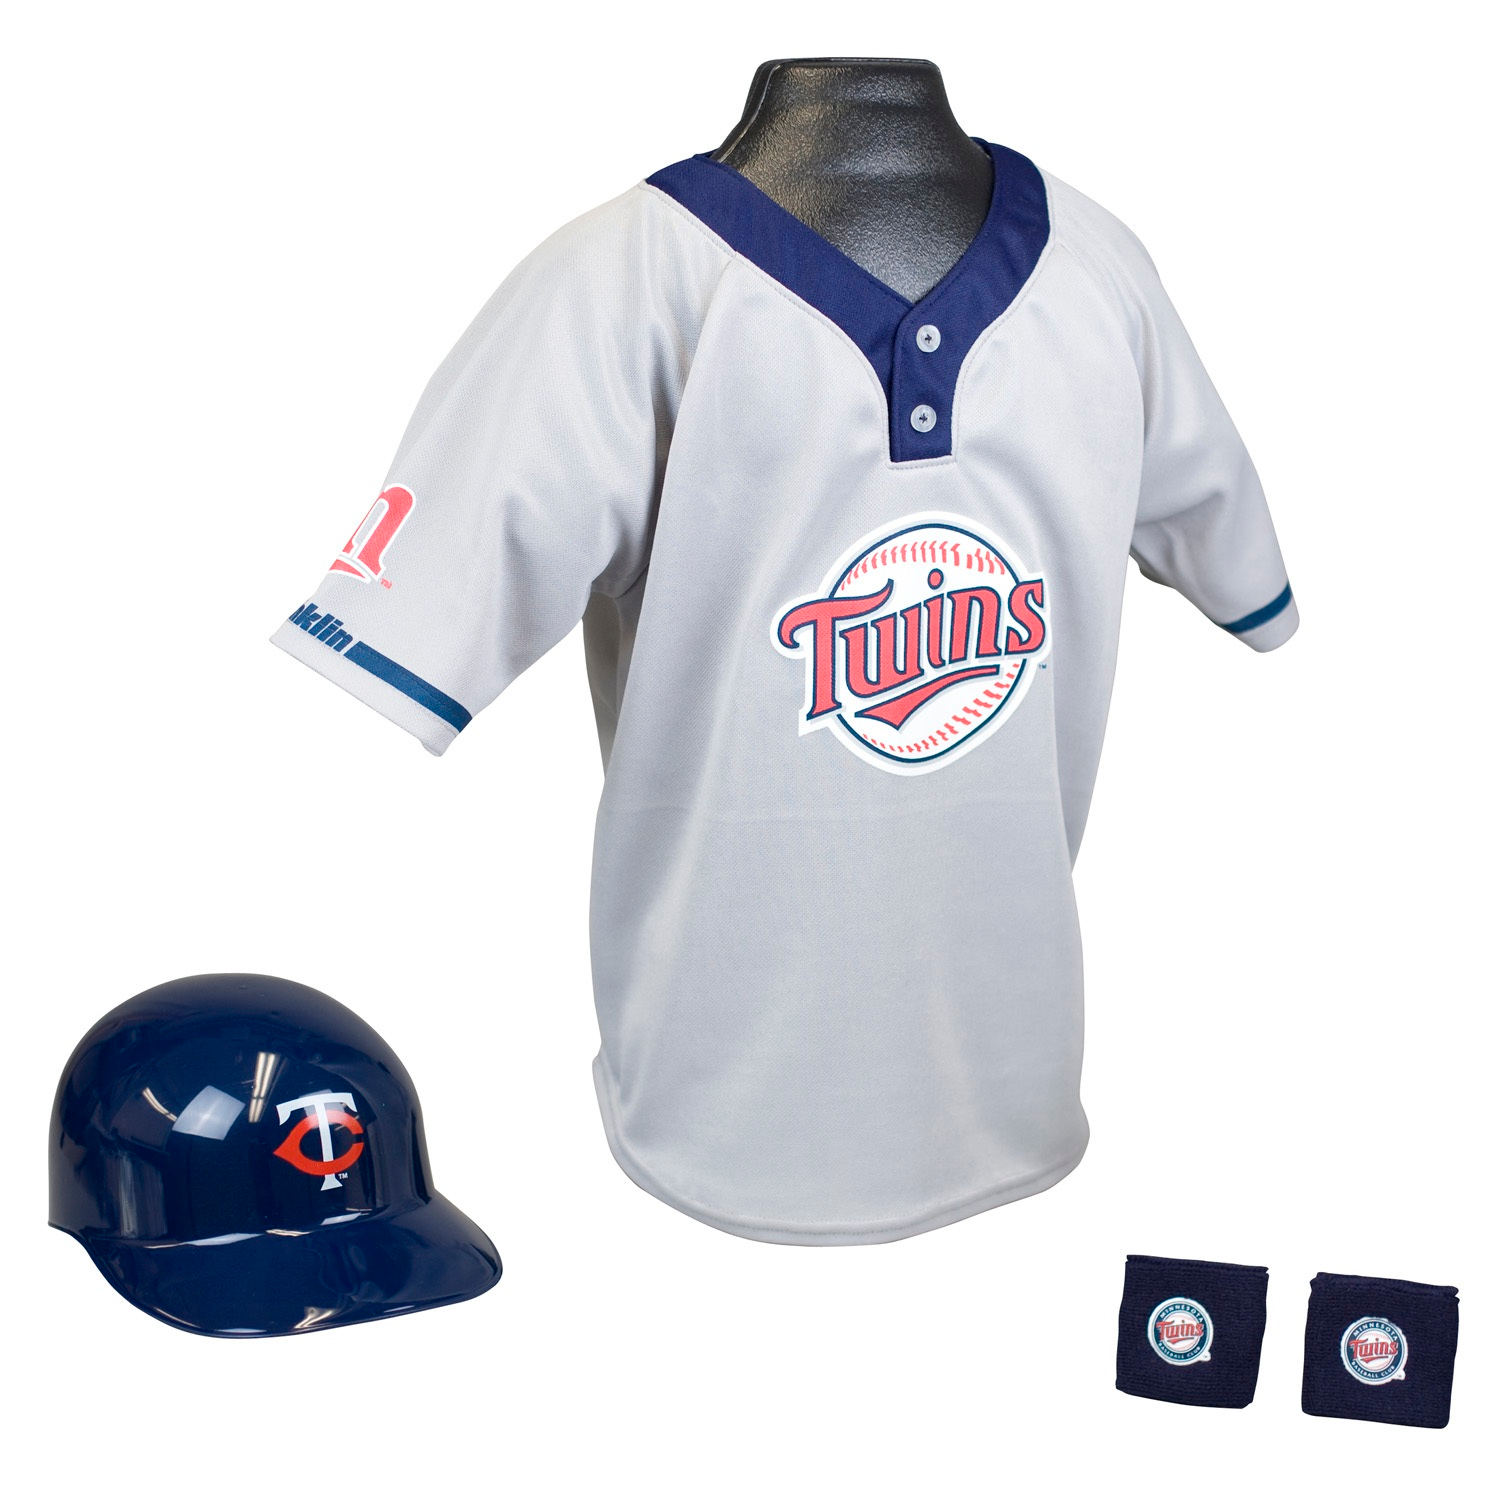 Minnesota Twins MLB Youth Uniform Set Halloween Costume